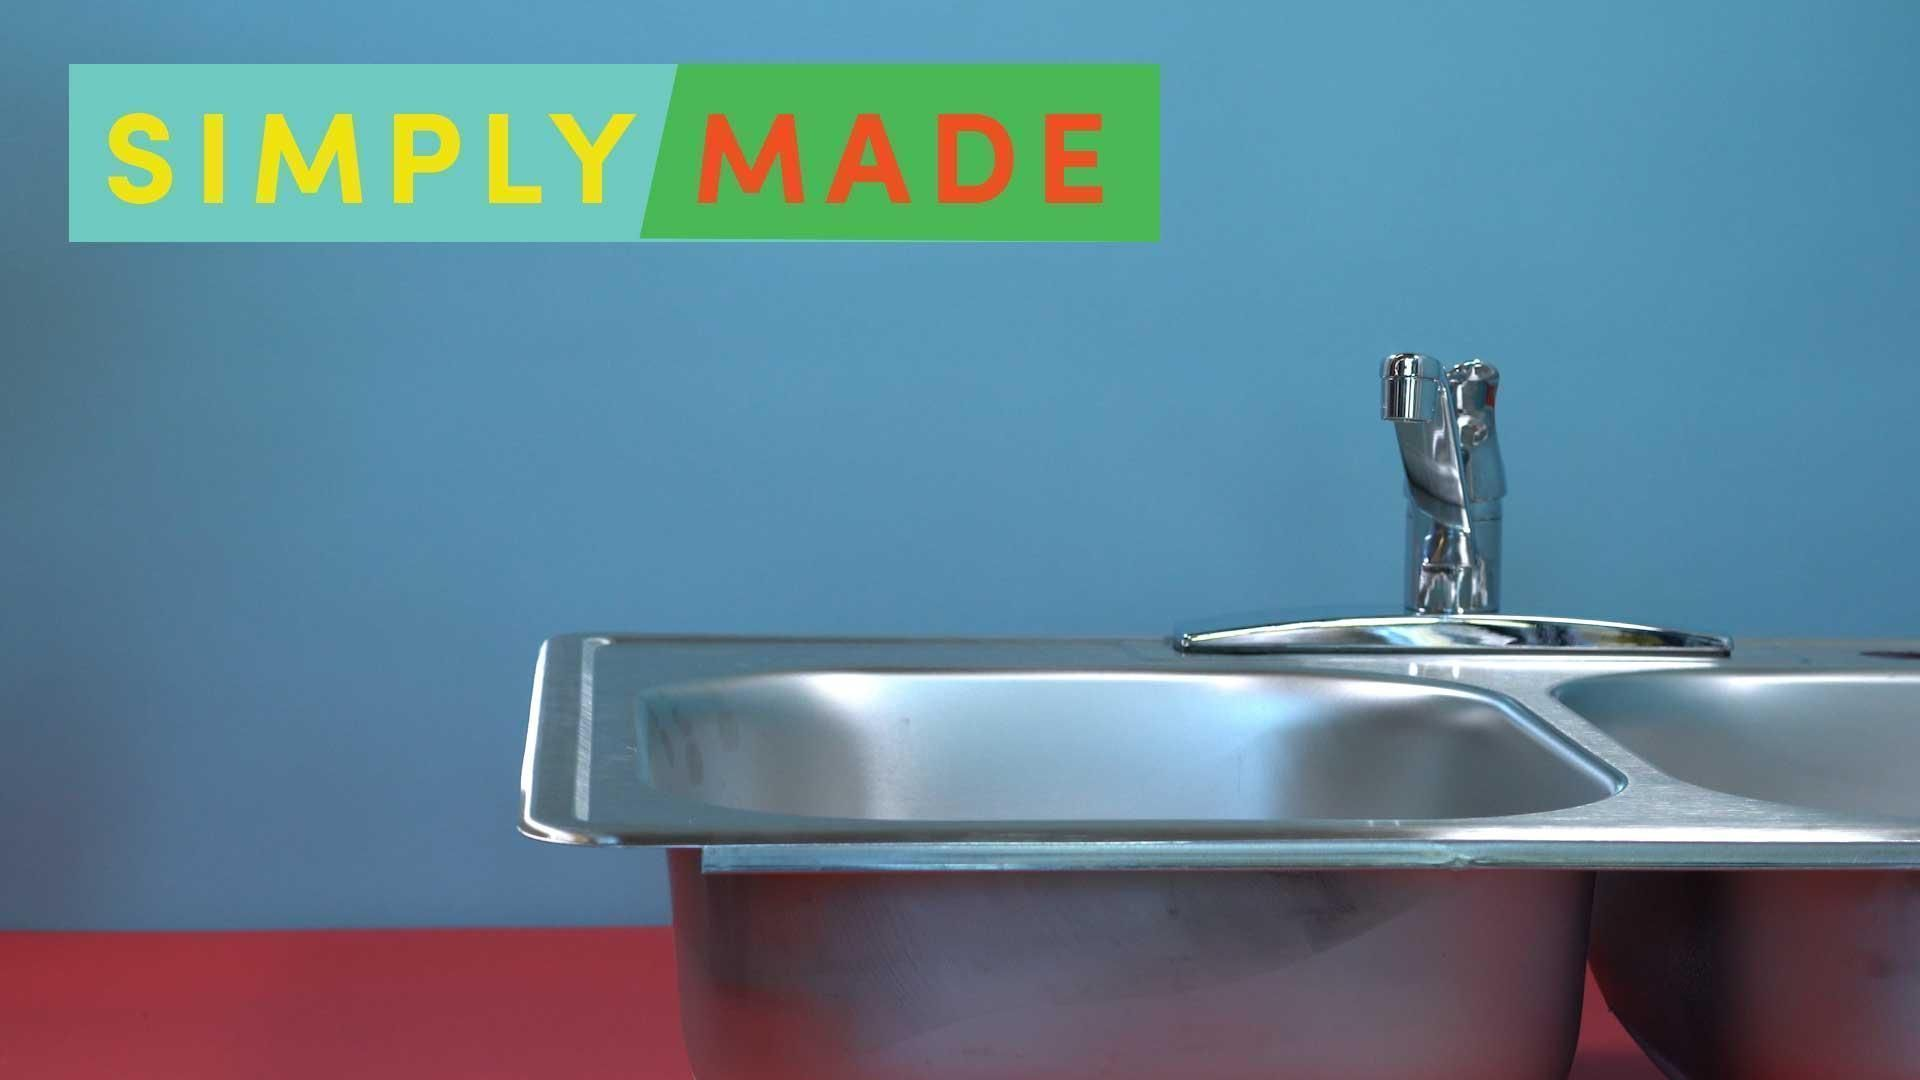 Ditch the Drano! 2-Ingredient DIY Sink Declogger | Nifty, Sinks and ...